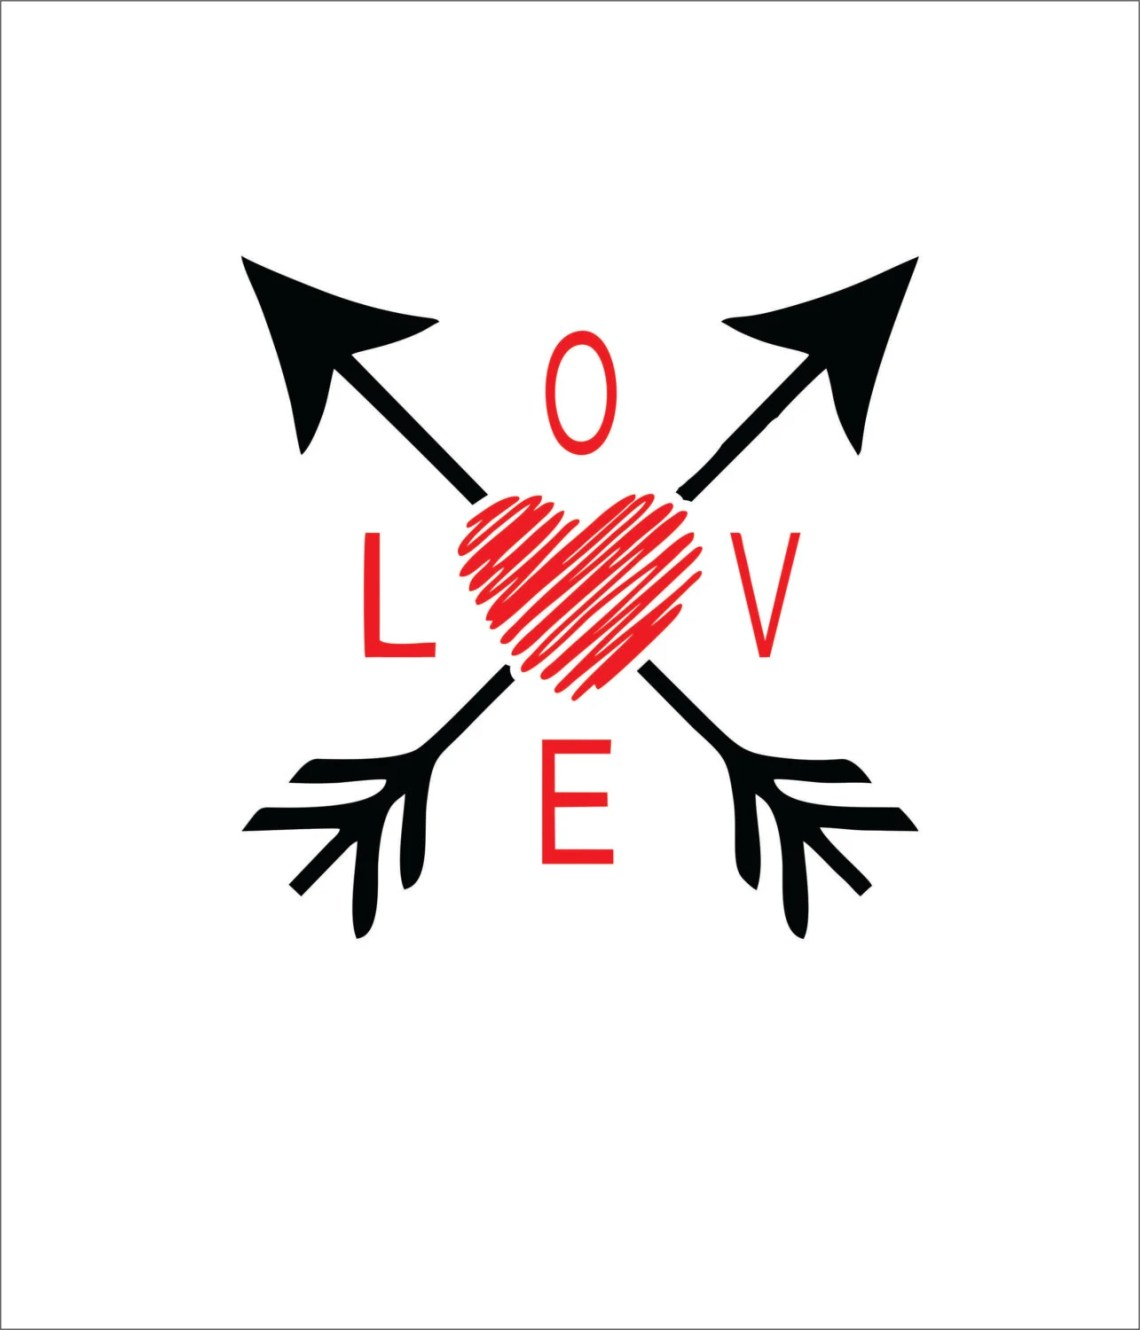 Download Valentine's Day Love arrows scribble heart SVG EPS DXF